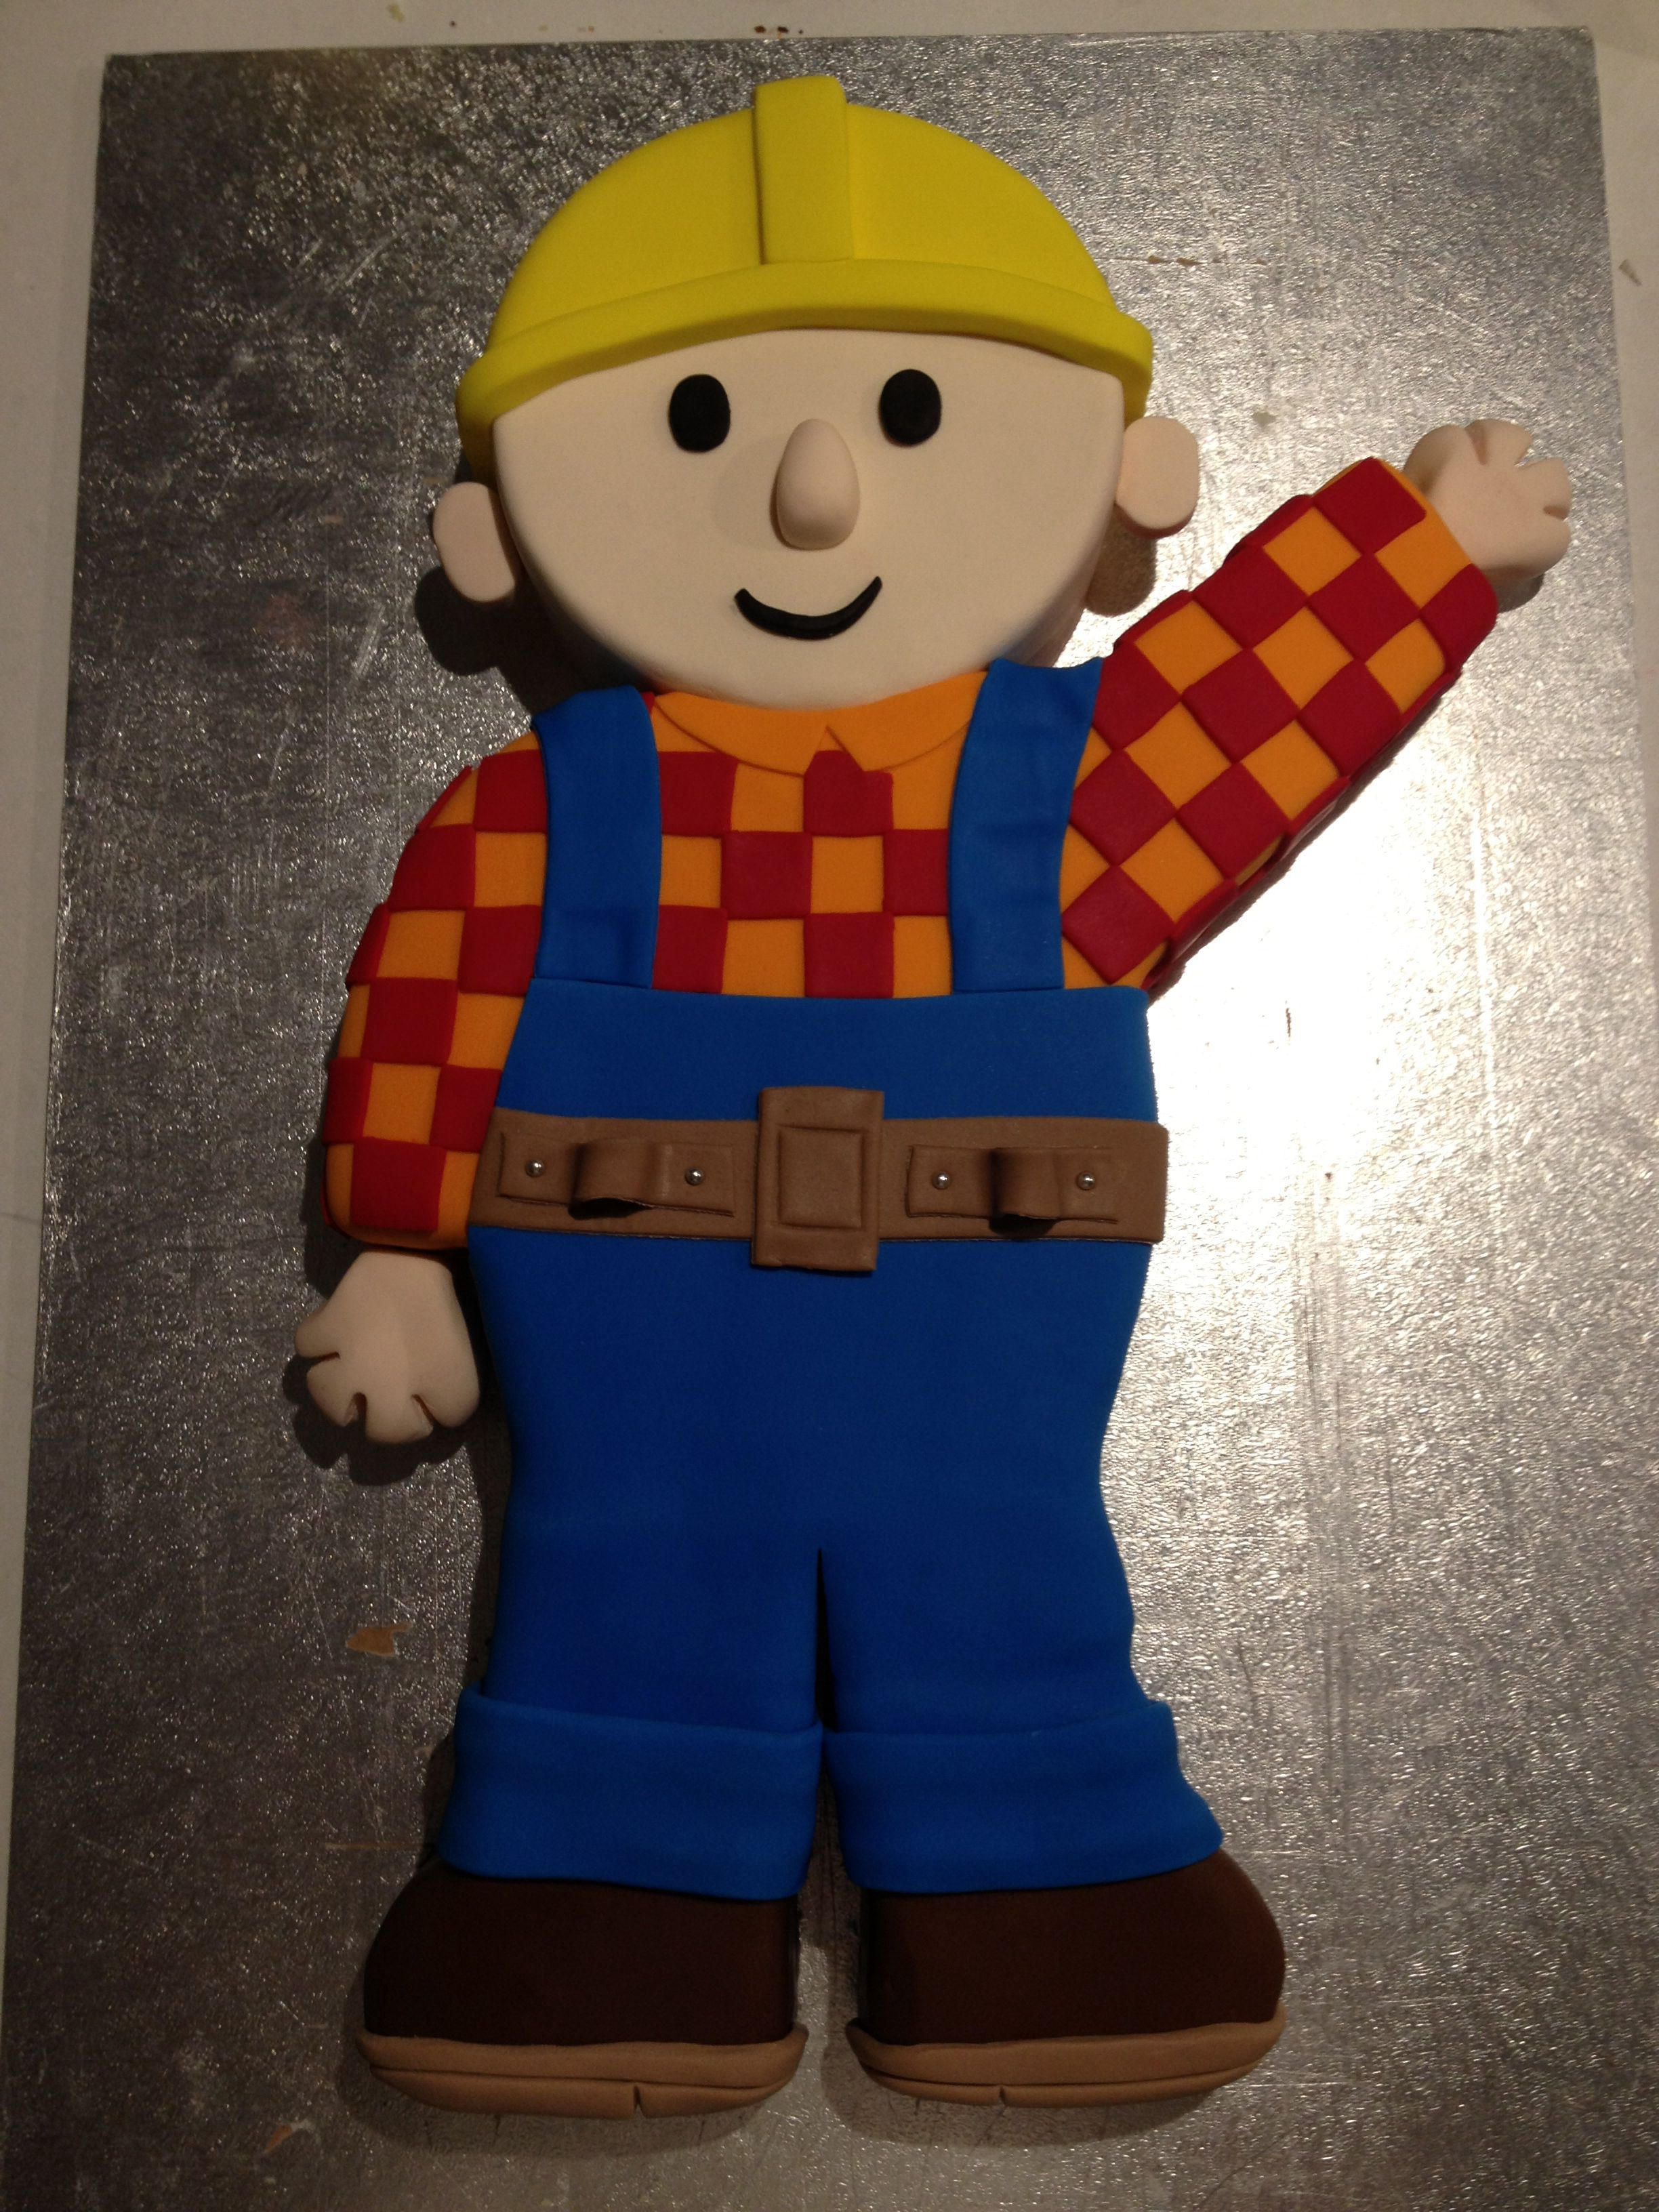 Bob the Builder Bob the builder, Party suggestions, Party